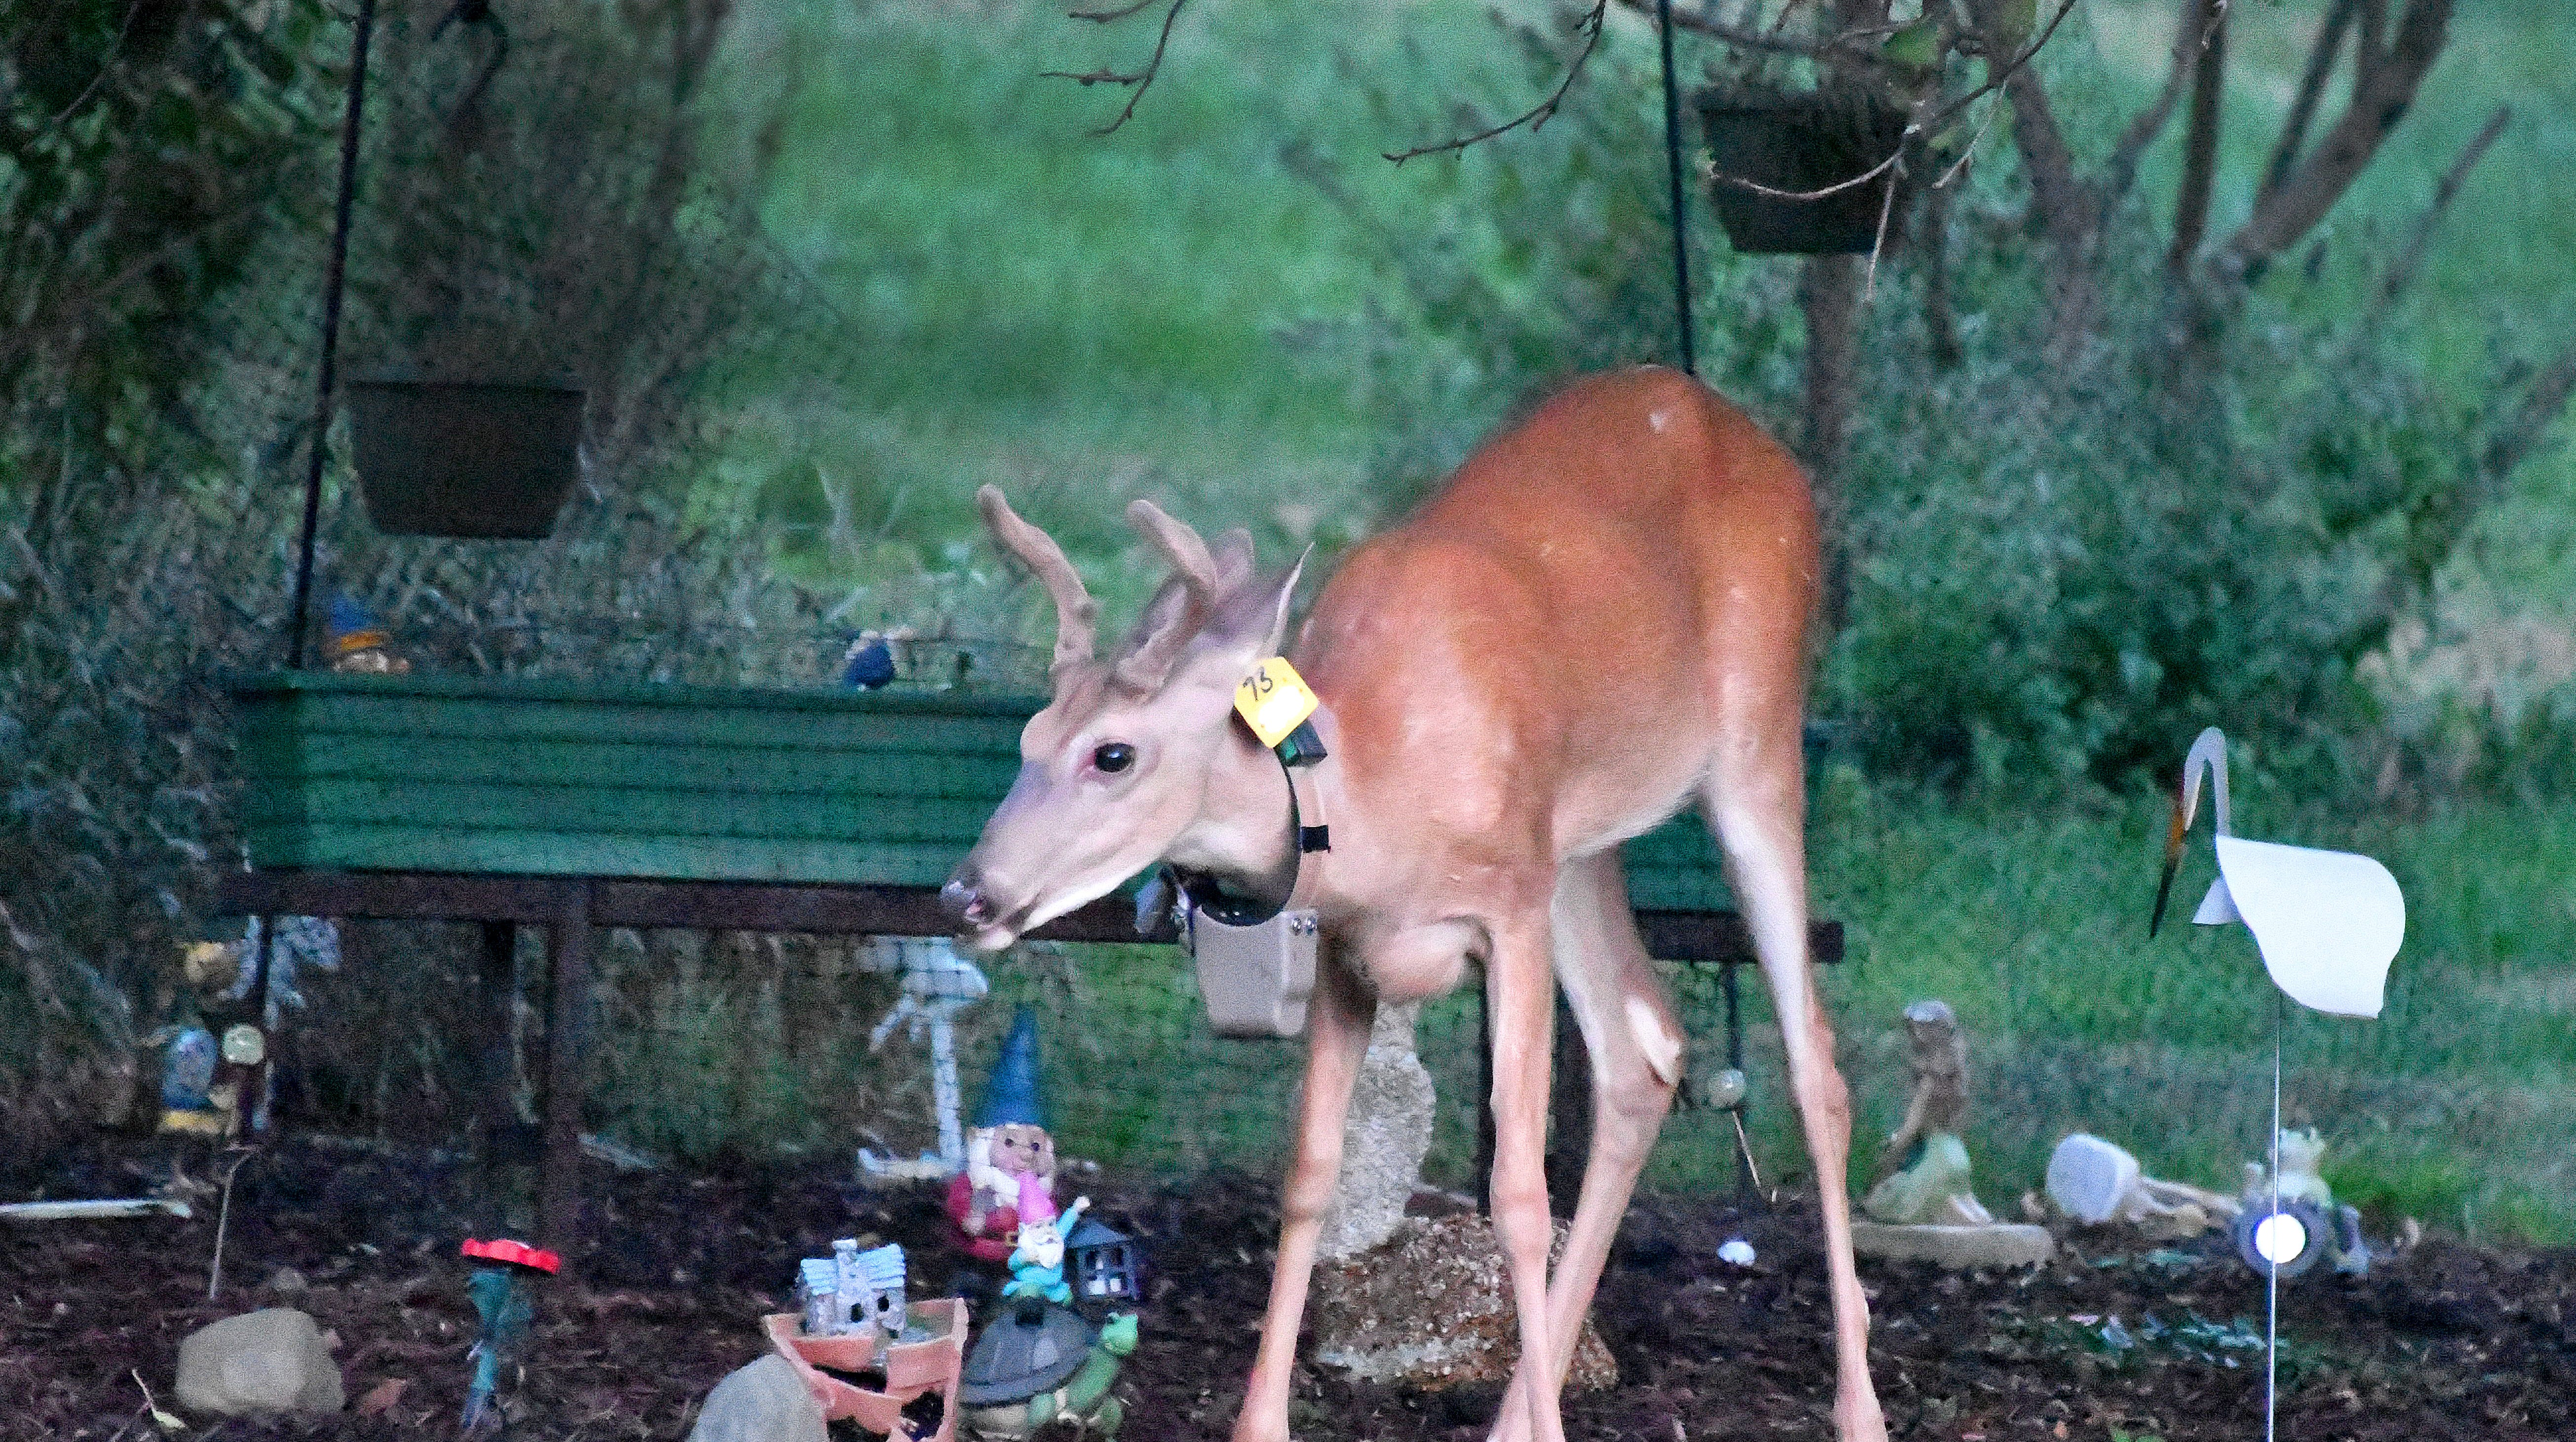 Sporting his GPS radio collar, this young white tailed deer trapises through a collection of garden trolls and other statuary in an Okemos, MI back yard, on Monday, July 30, 2018, not far from where the first case of Chronic Wasting Disease in the wild was discovered in Michigan.  Using GPS collars and other high-tech equipment, MSU researchers are helping the Michigan DNR in their efforts to combat Chronic Wasting Disease (CWD.)